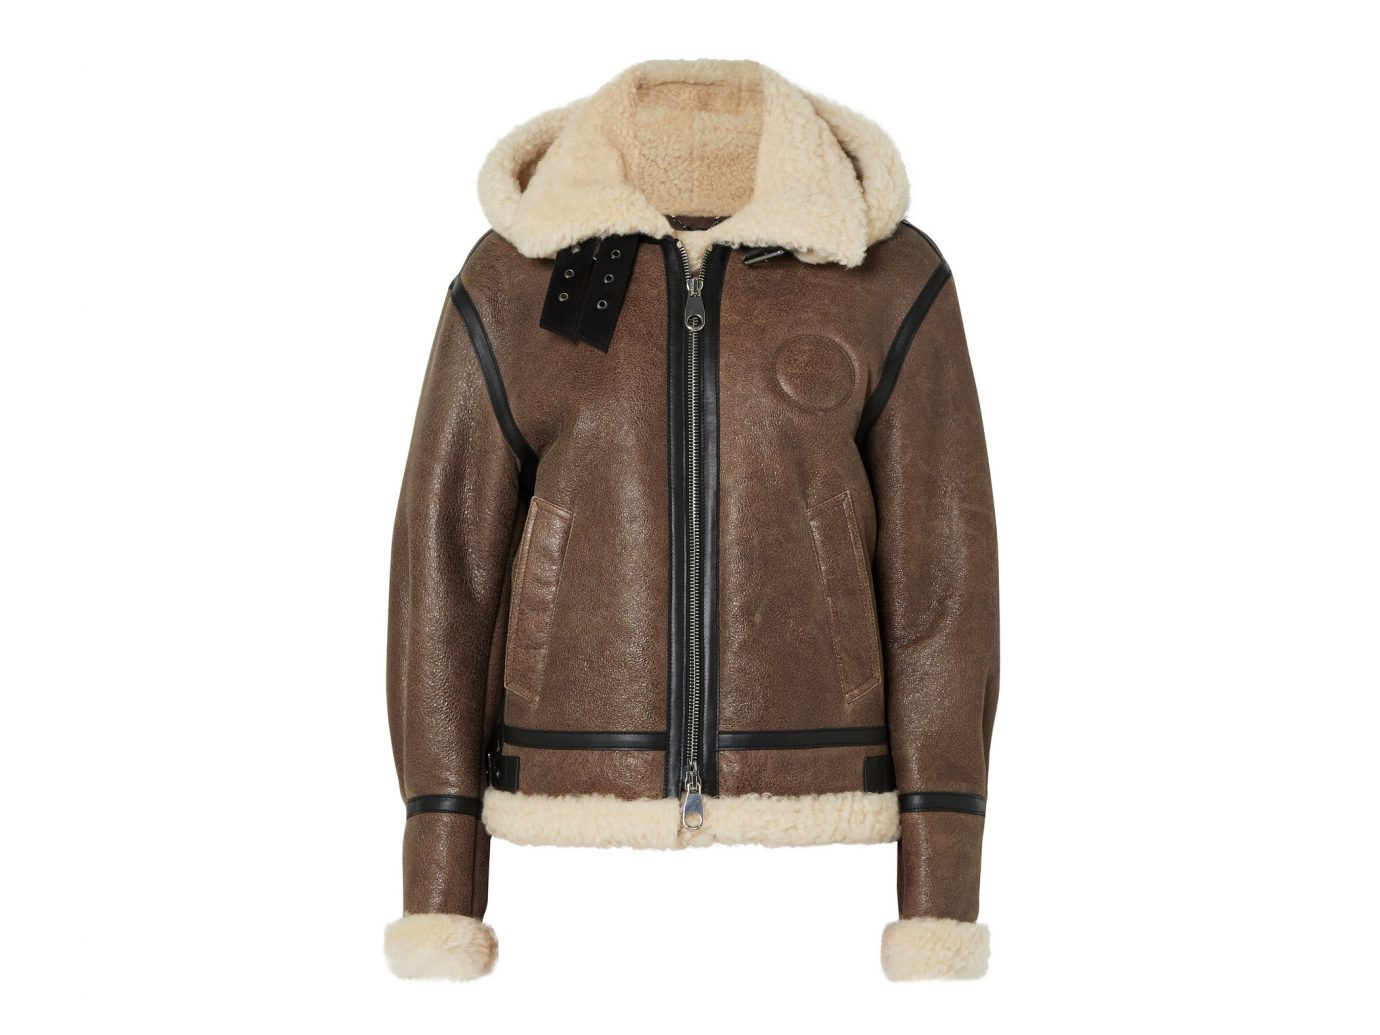 Chloé Shearling-Lined Textured-Leather Jacket